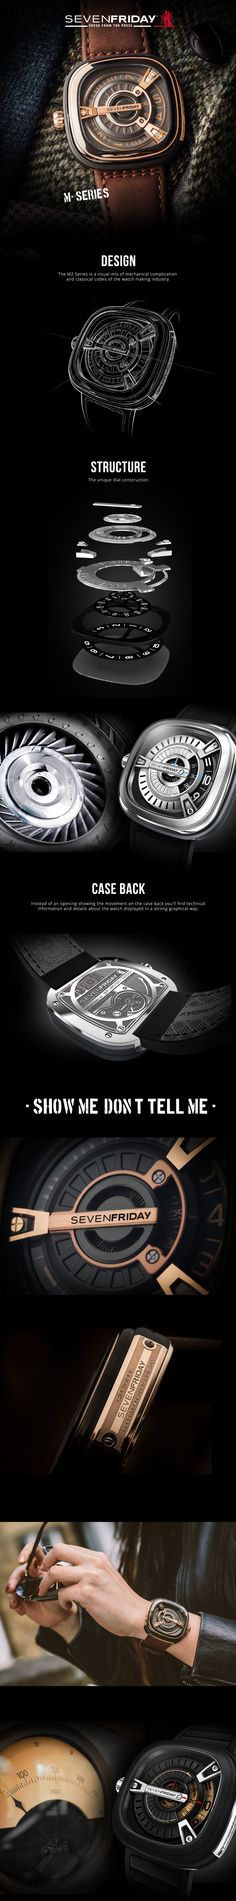 SEVENFRIDAY M-Series on Industrial Design Served